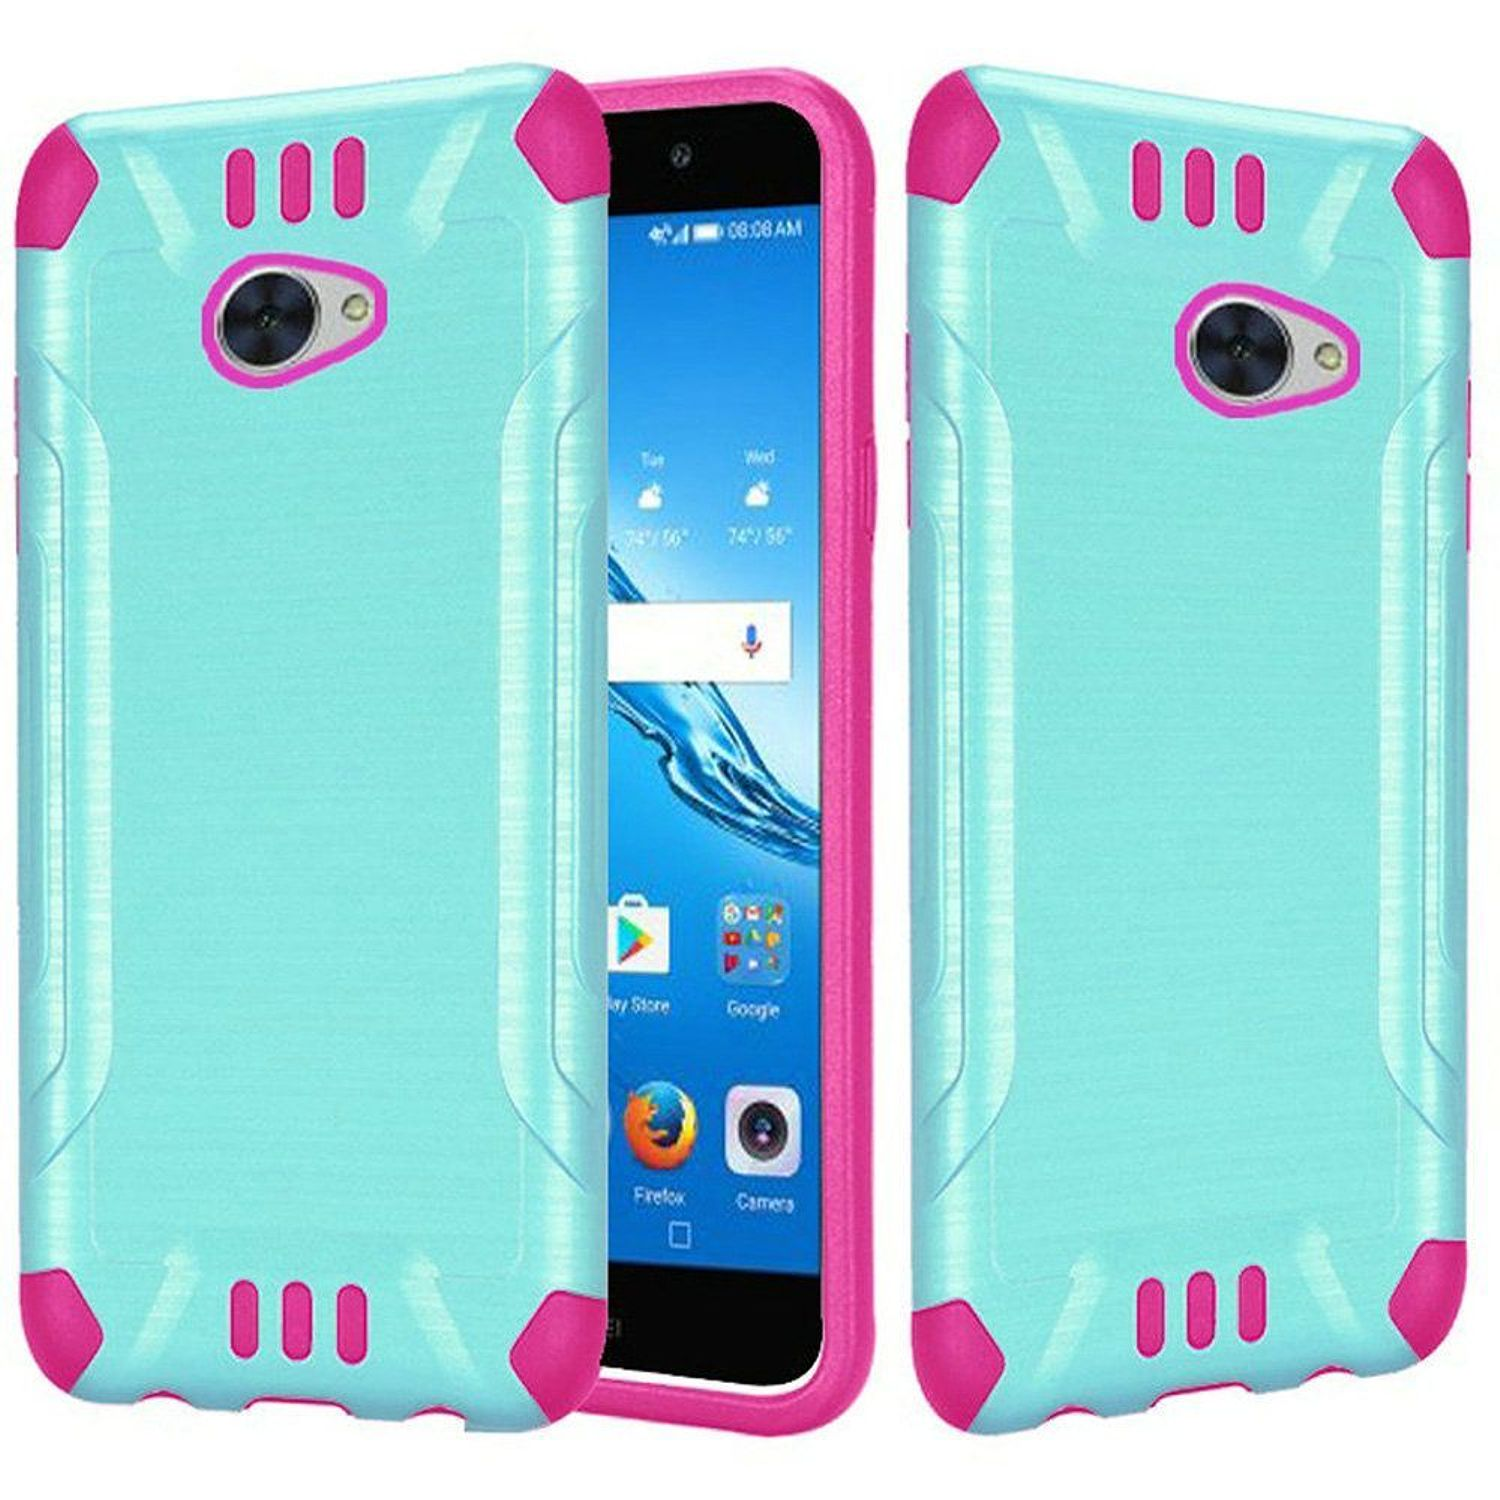 Huawei Ascend XT2 Case, by HR Wireless Slim Armor Dual Layer [Shock Absorbing] Hybrid Brushed Hard Plastic/Soft TPU Rubber Case Cover For Huawei Ascend XT2, Teal/Hot Pink